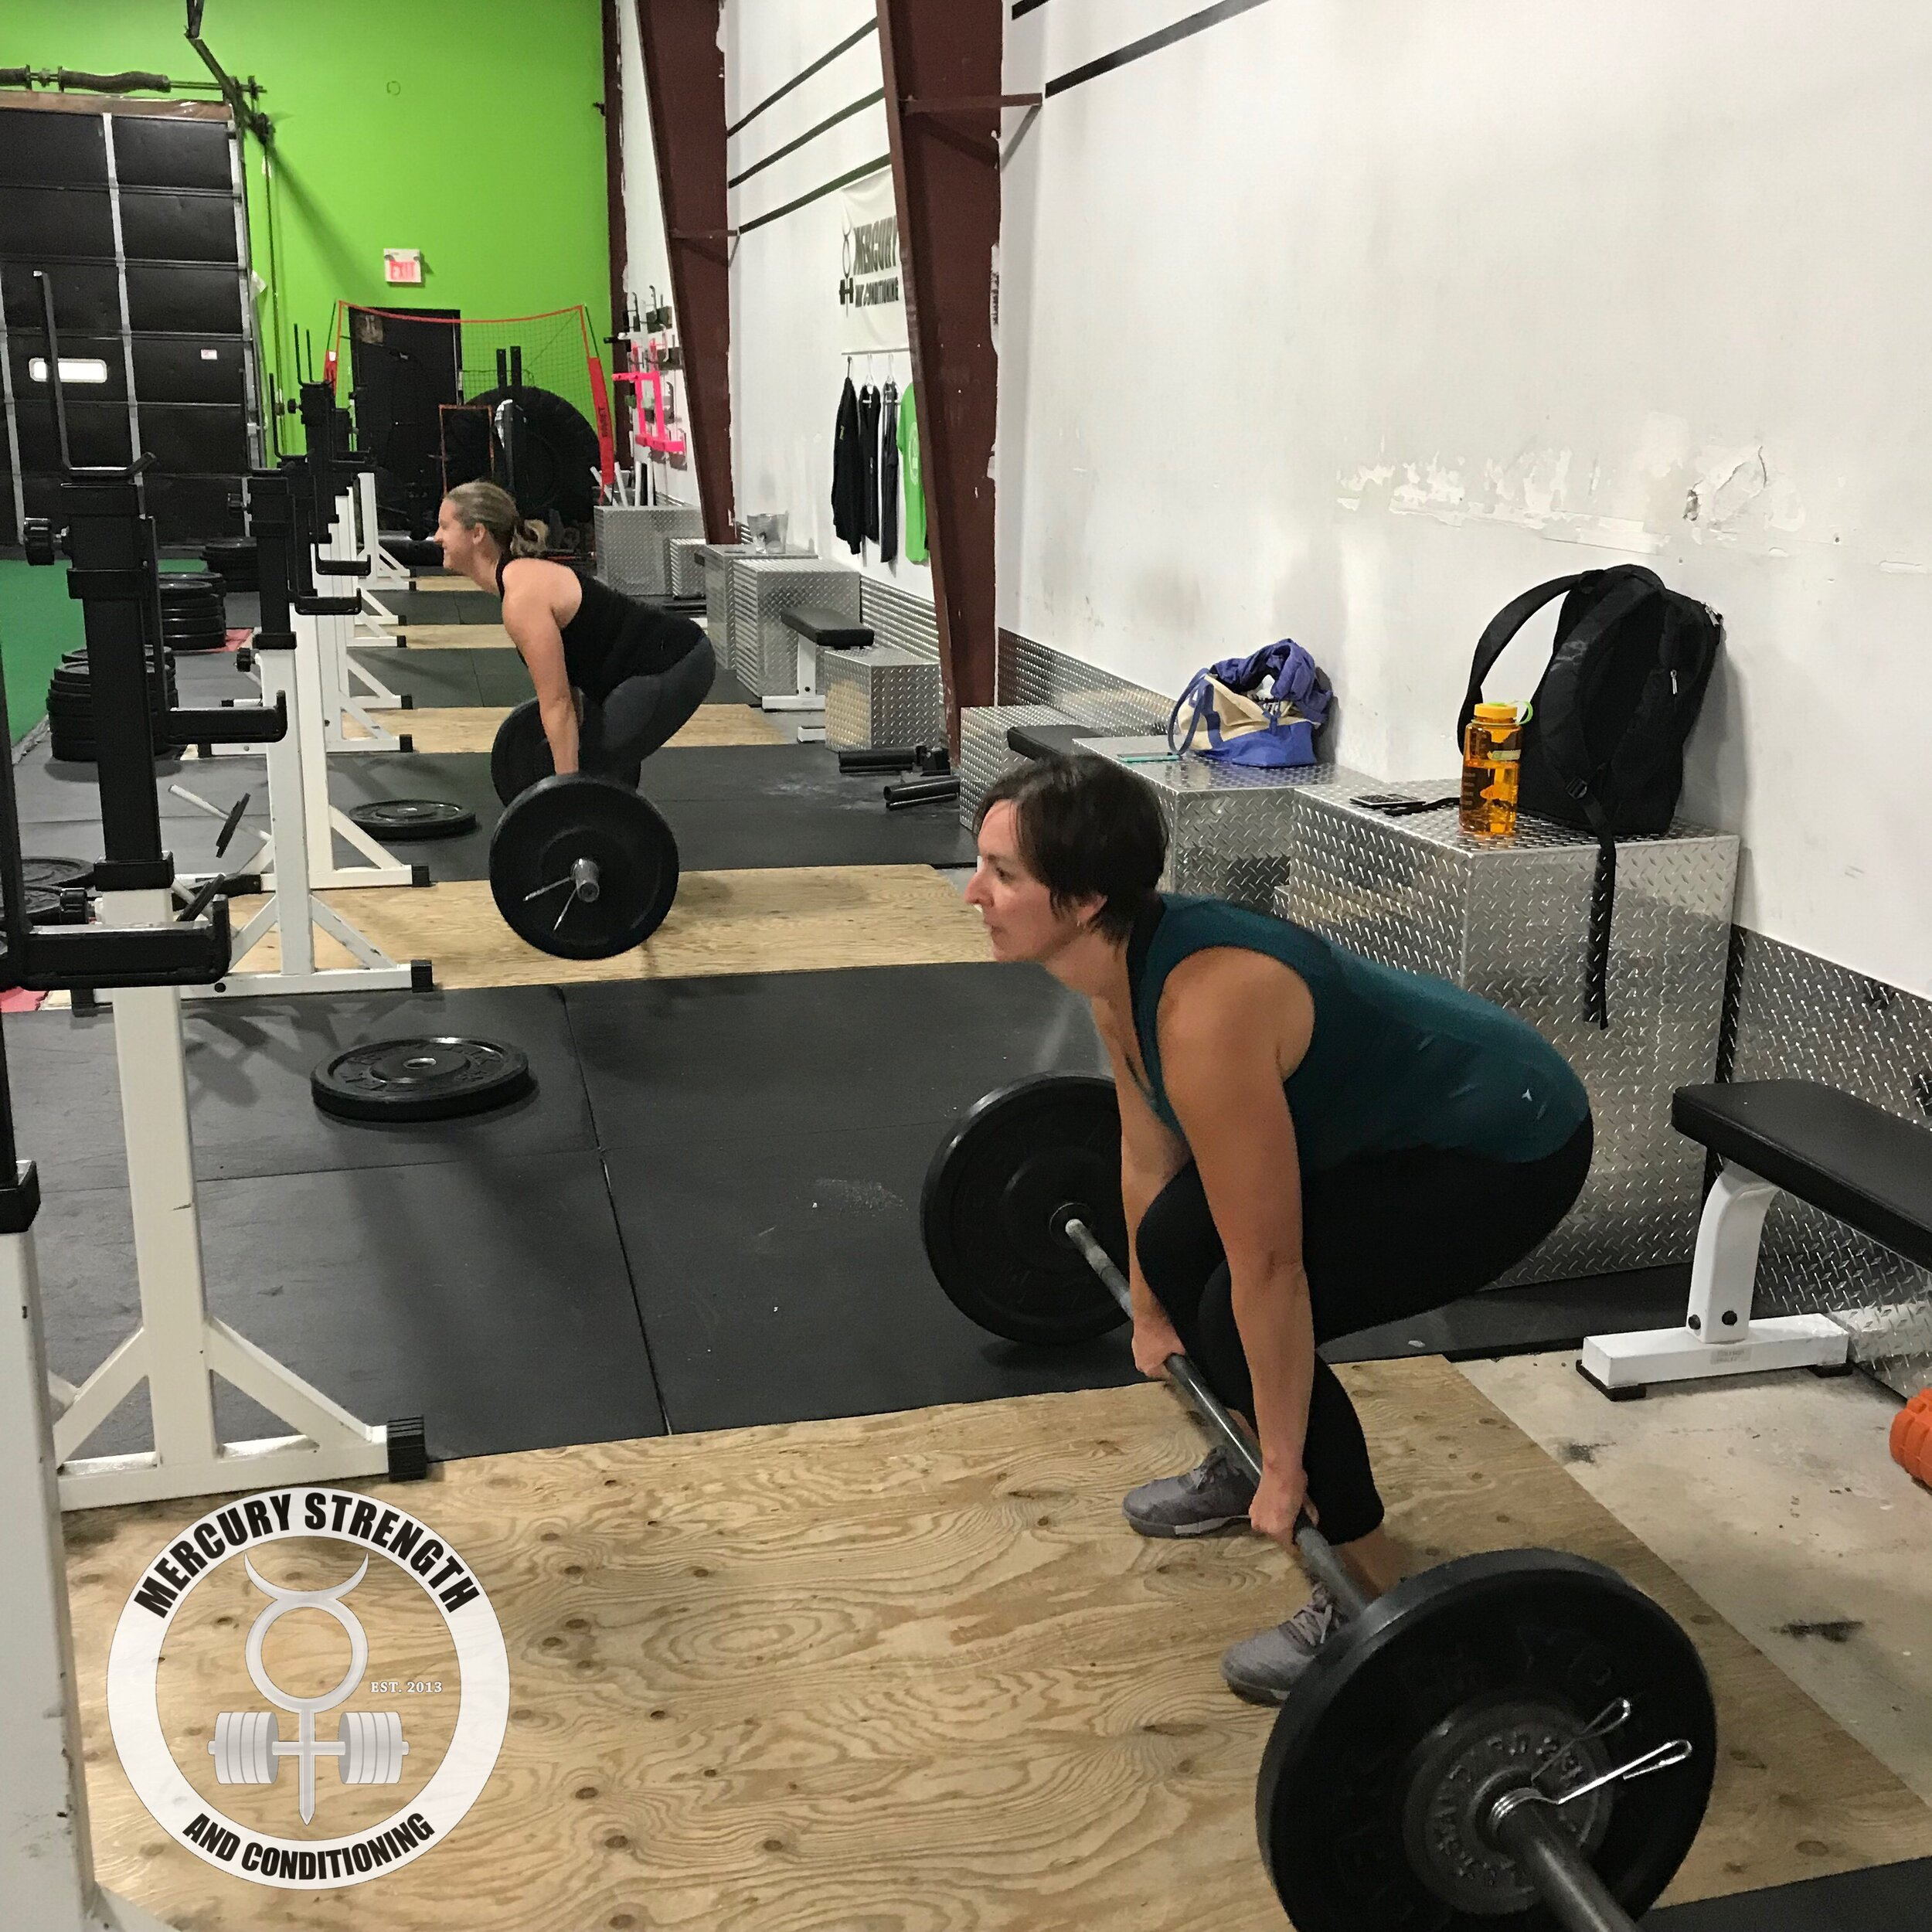 Jessica and Tara keeping the wedge while deadlifting.